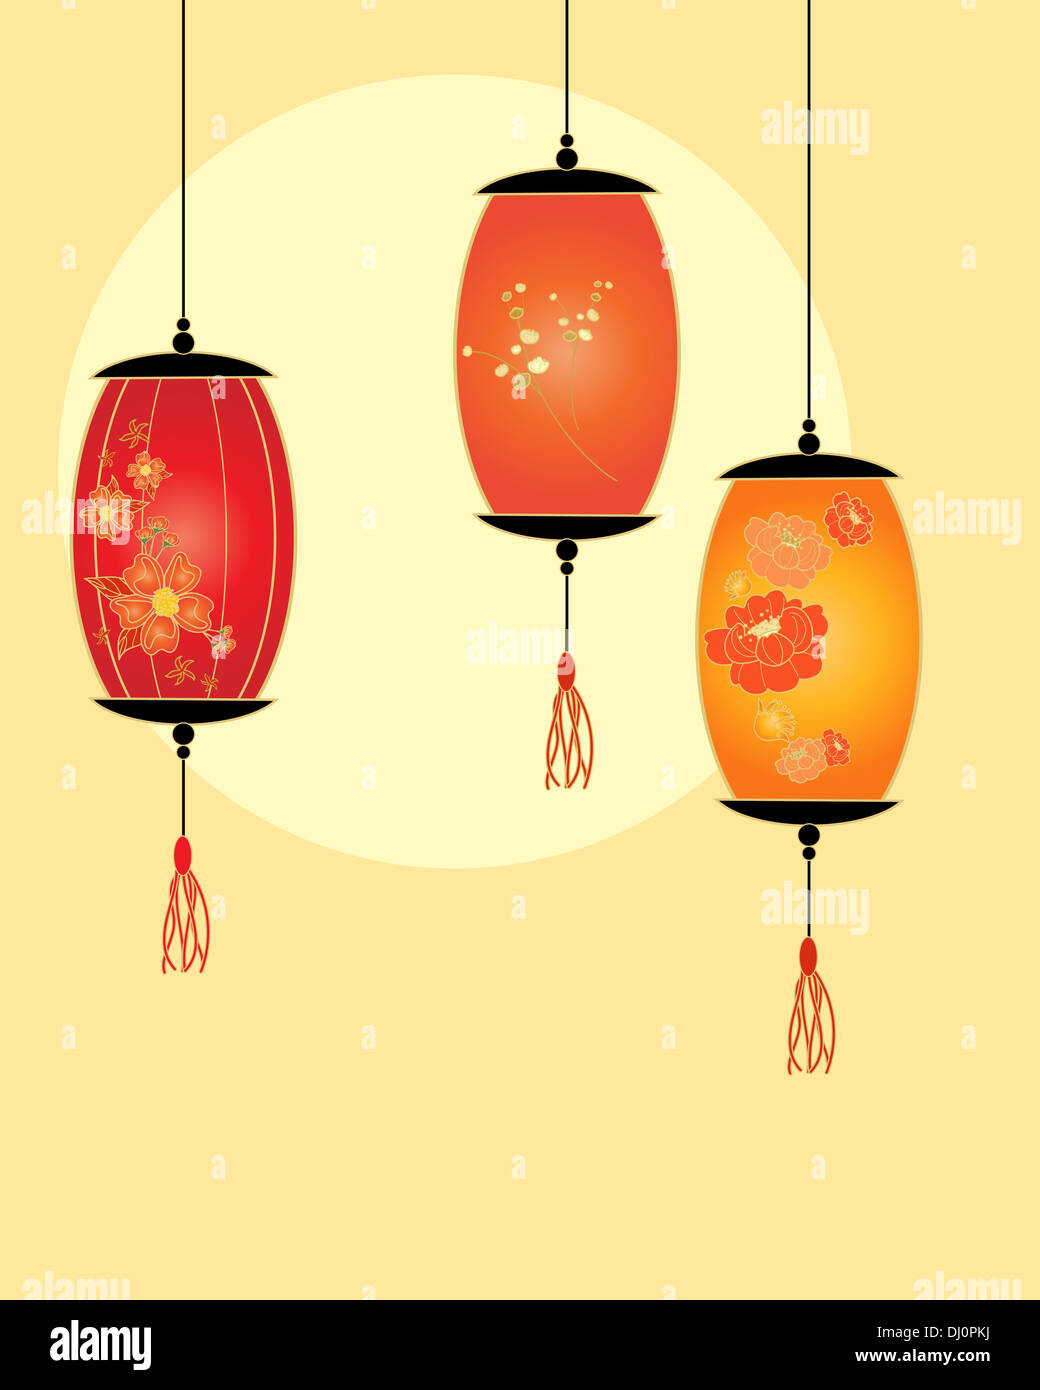 an illustration of a simple chinese lantern design with oriental